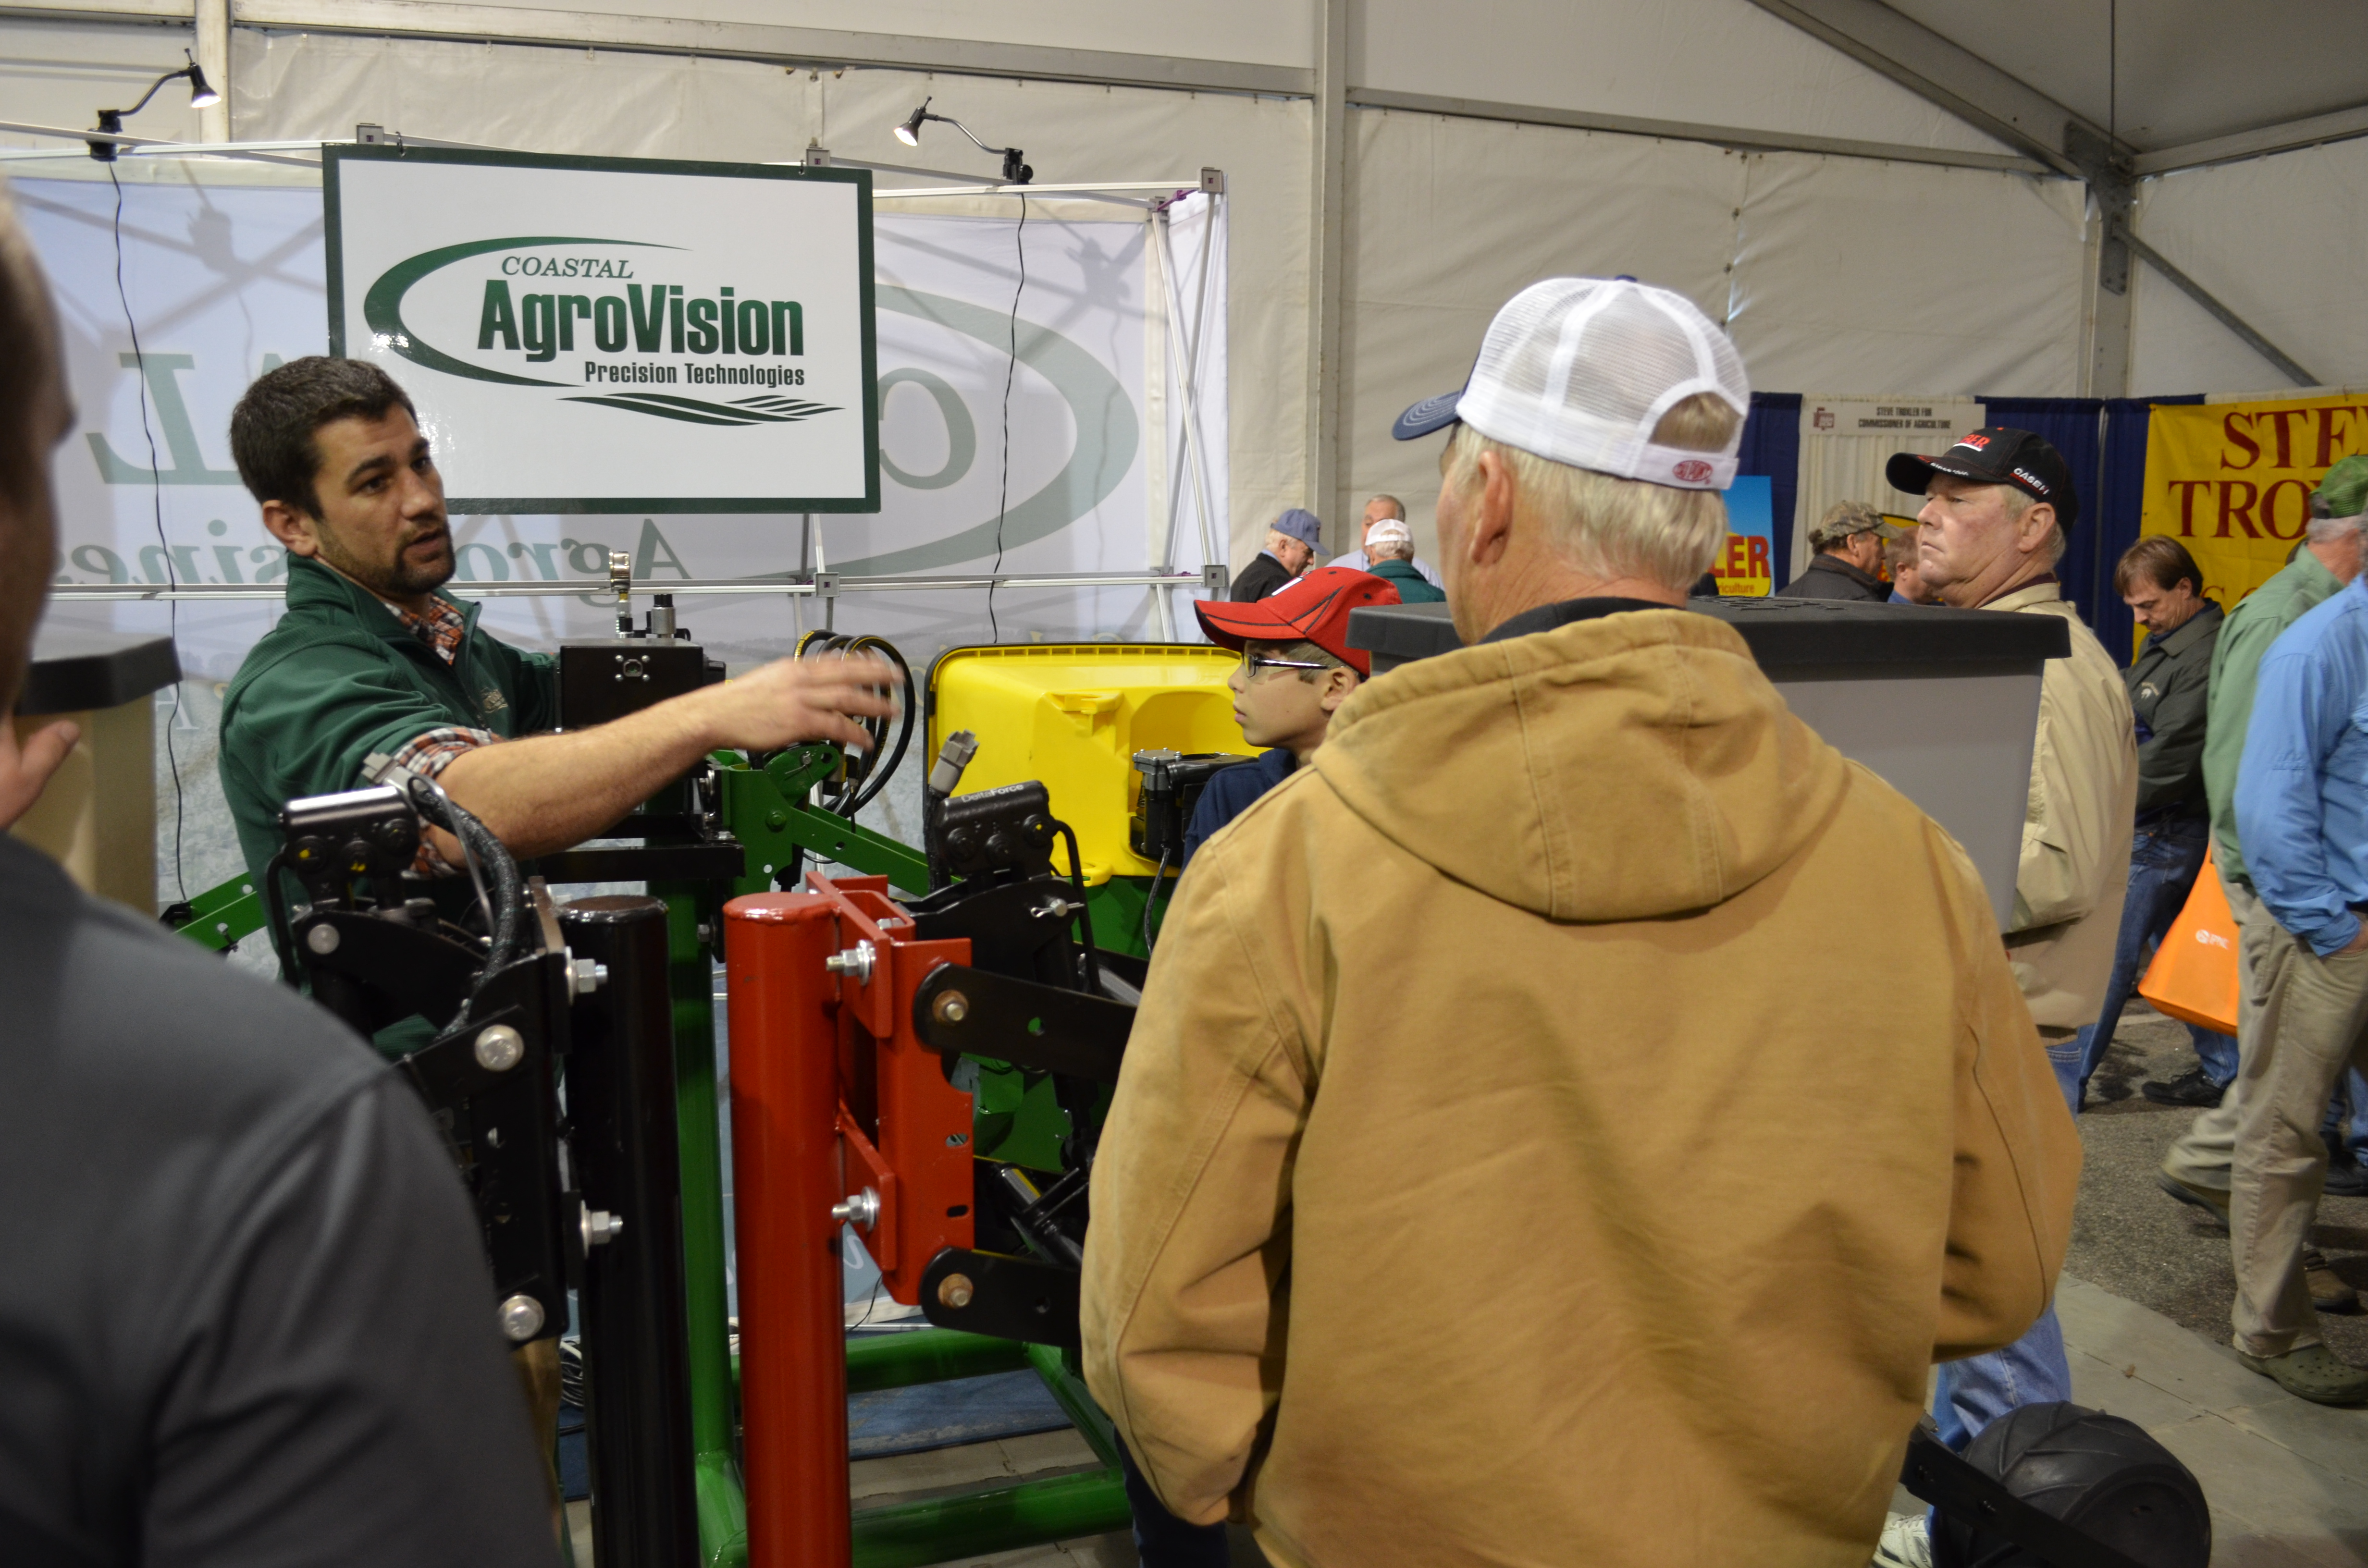 Tripp demonstrating AgroVision Precision equipment